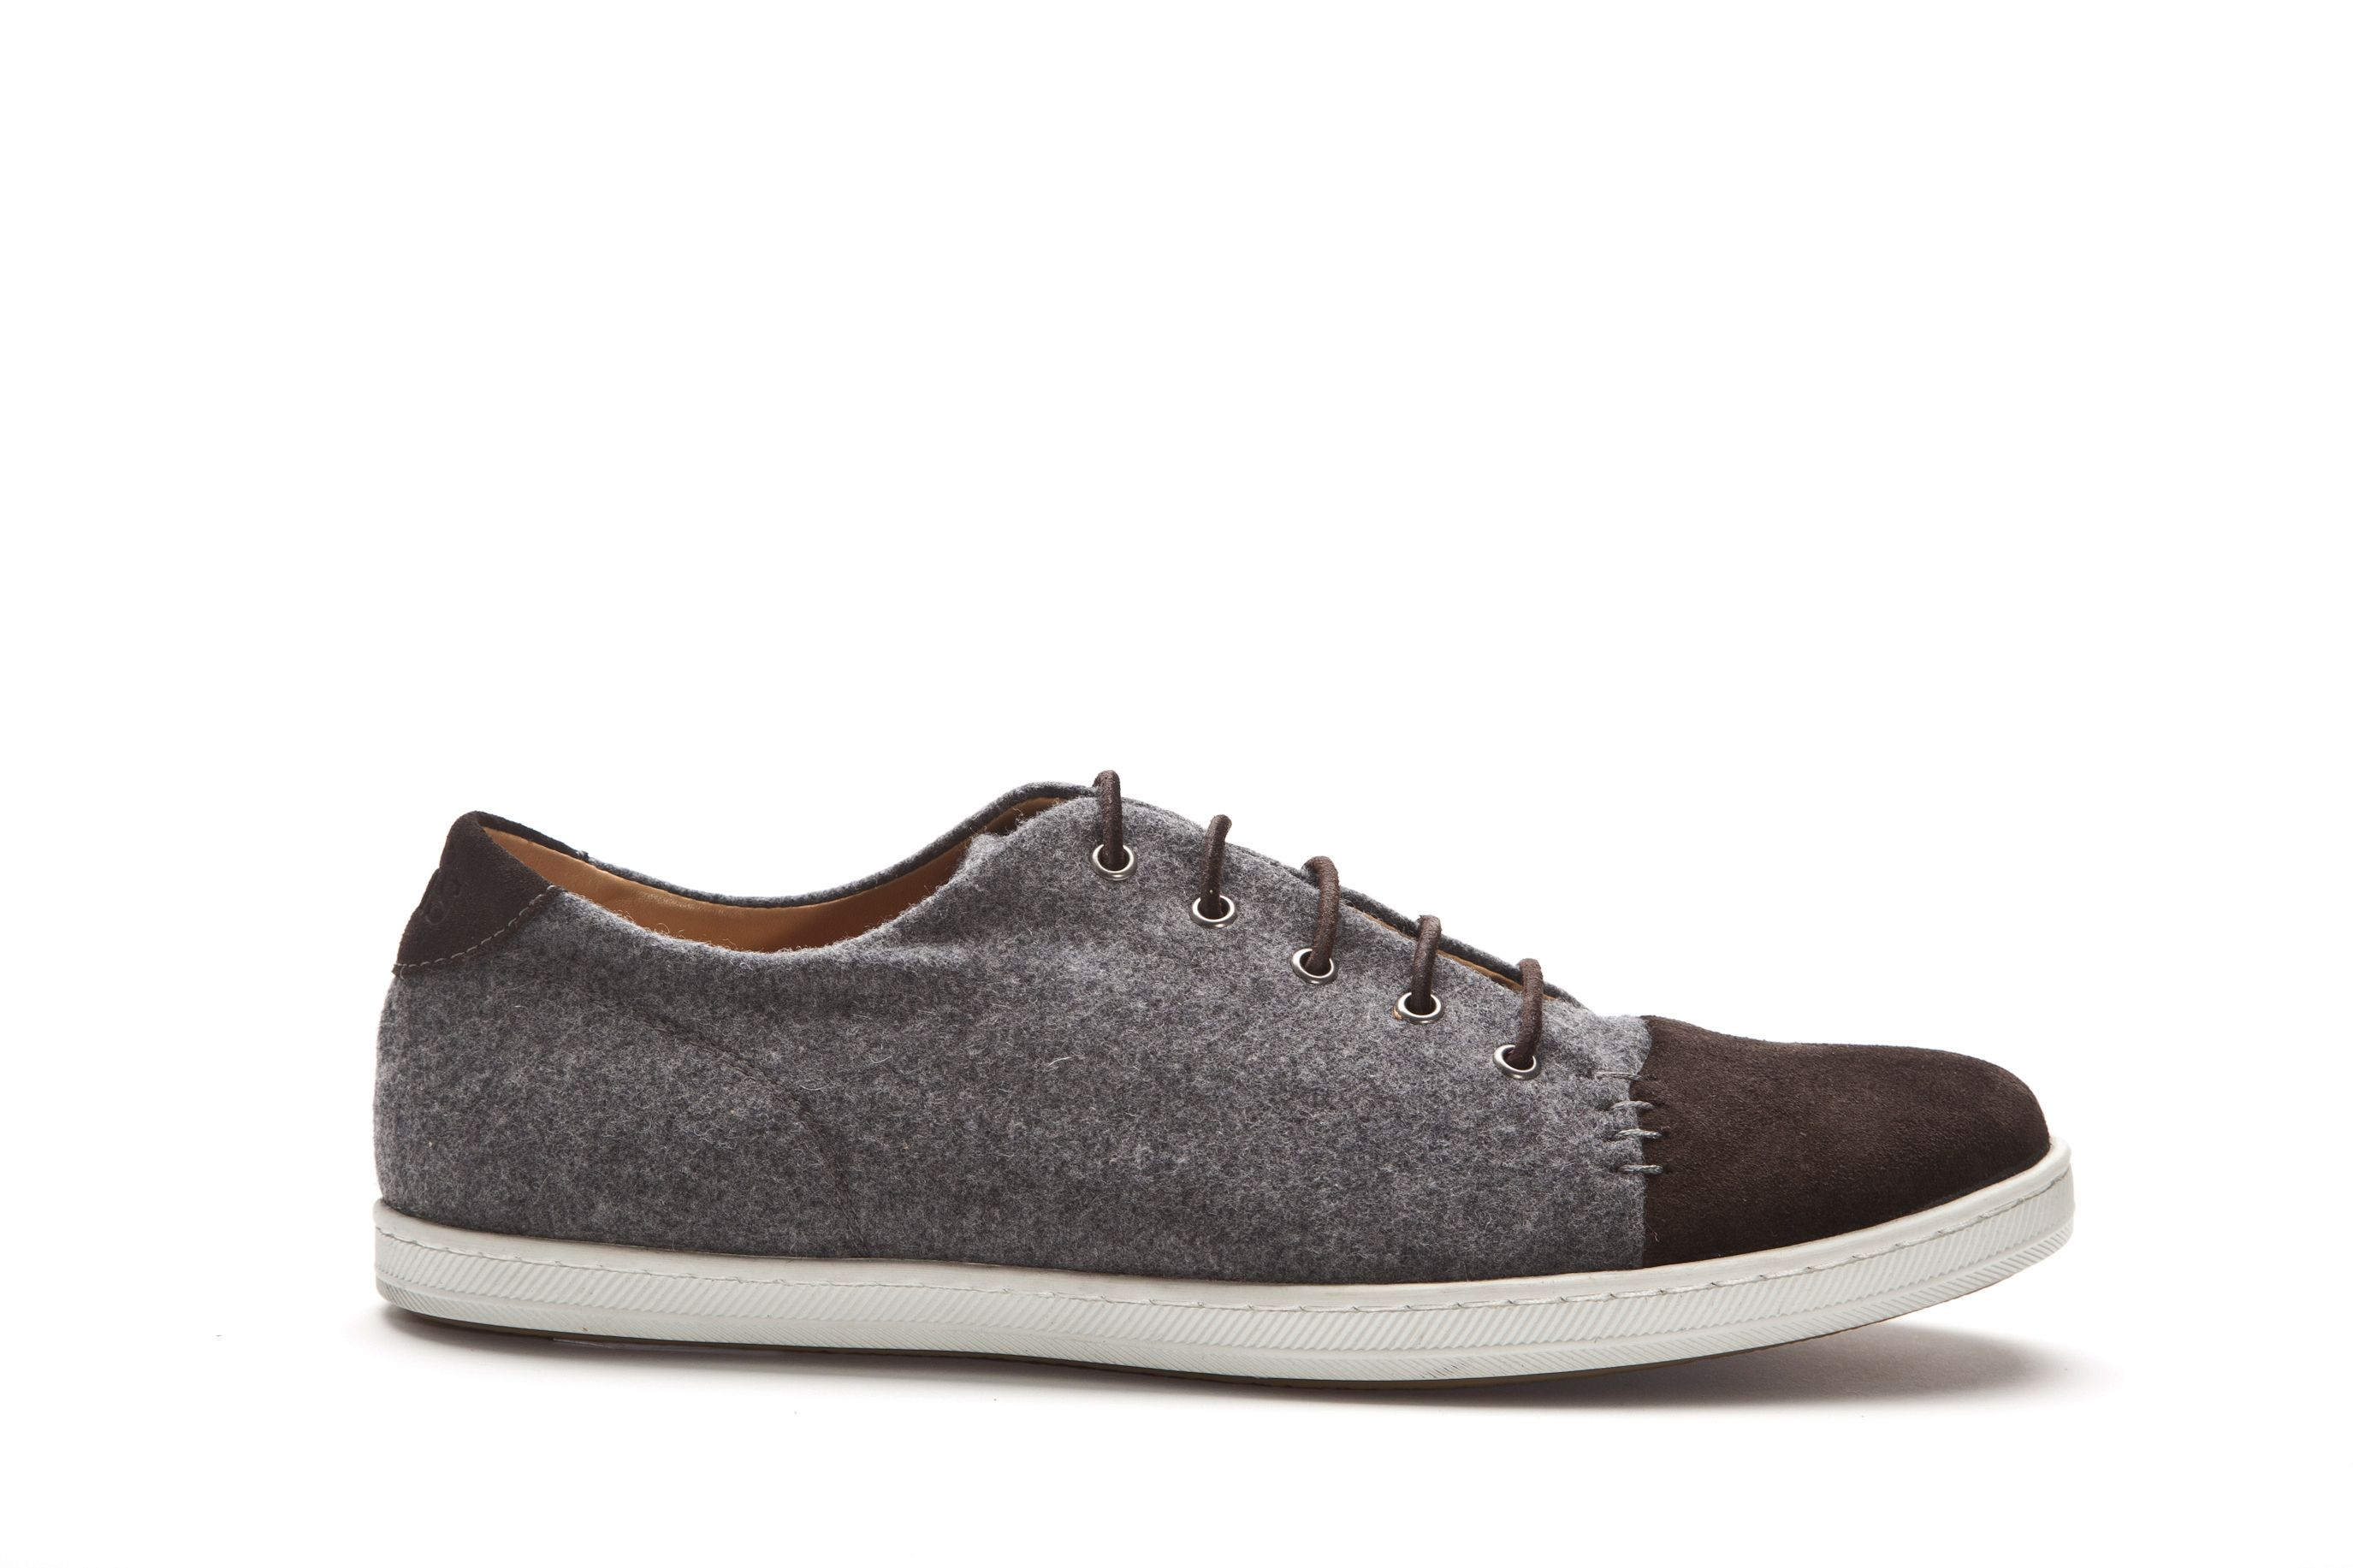 Desmond Deluxe grey wool trainers